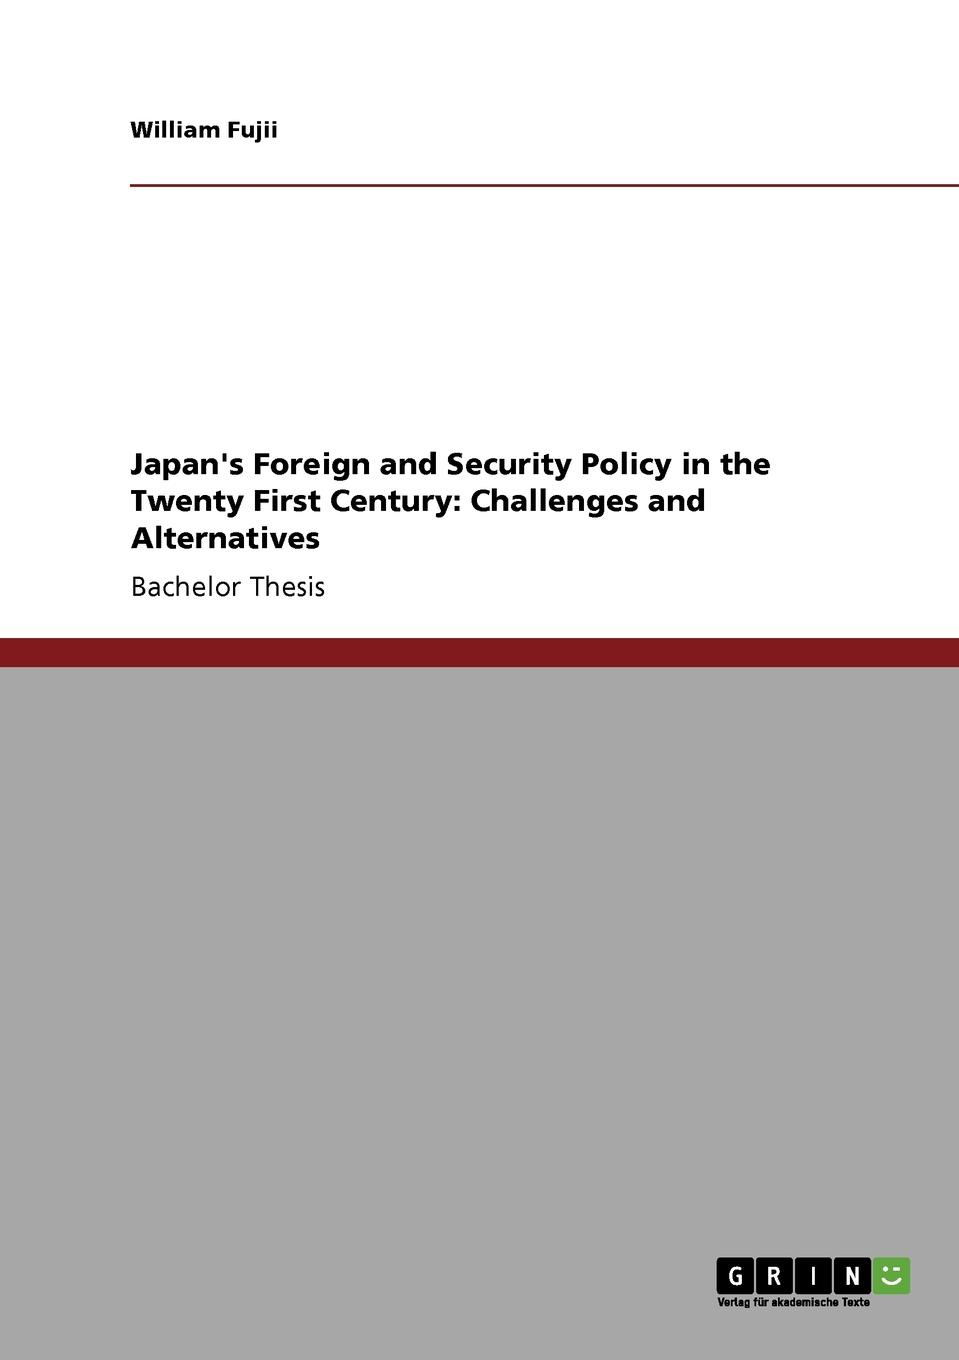 William Fujii Japan.s Foreign and Security Policy in the Twenty First Century. Challenges and Alternatives jeffrey lantis s us foreign policy in action an innovative teaching text